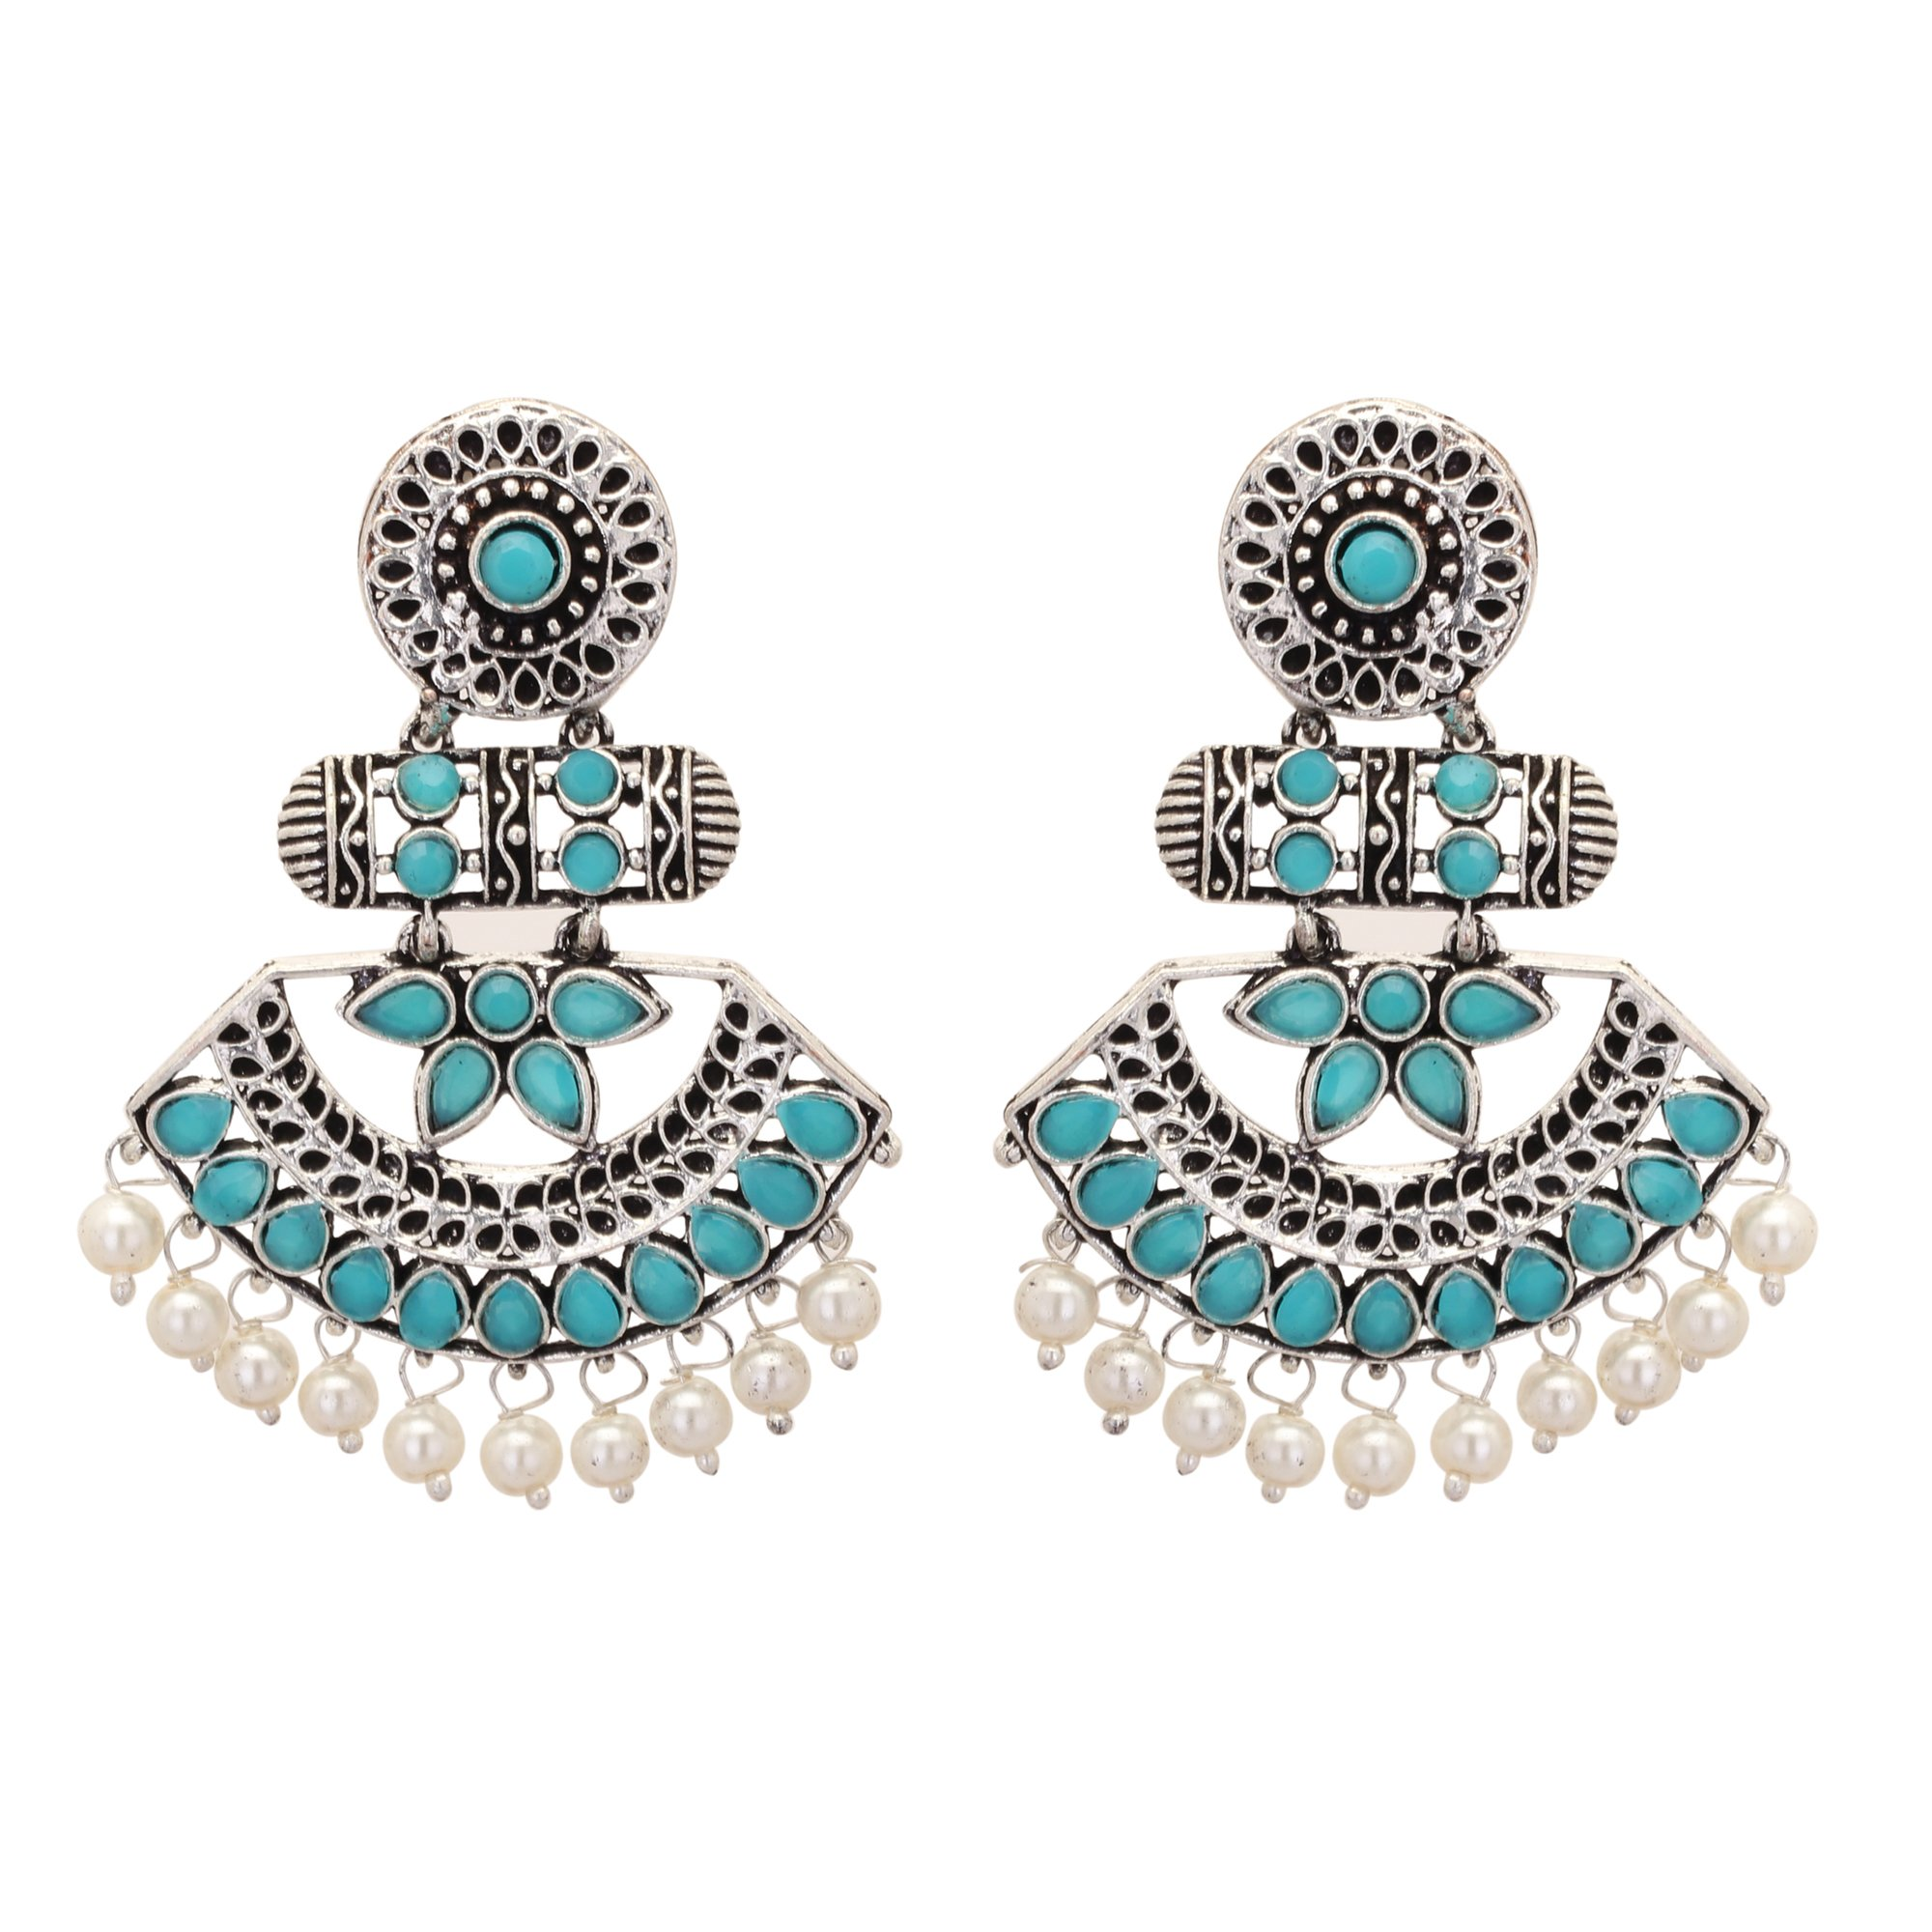 Jwellmart Gypsy Bohemian Tribal German Silver Oxidized Stone Dangle Indian Earrings for Women and Girls (Turquoise)